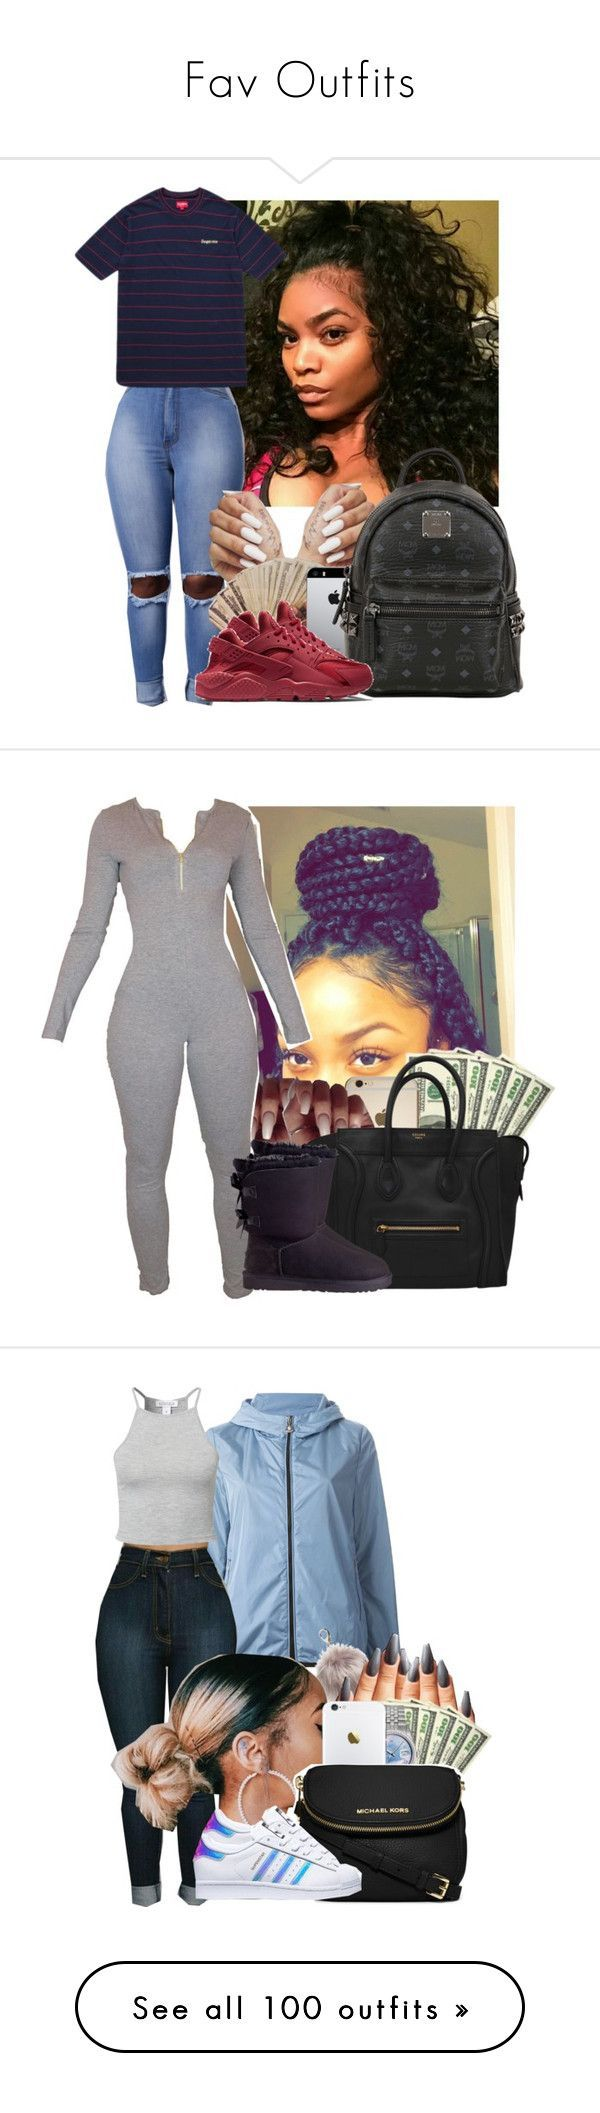 Fav Outfits by jawnnextdoor ❤ liked on Polyvore featuring MCM, NIKE, UGG Australia, Moncler, Nila Anthony, Estradeur, Rolex, MICHAEL Michael Kors, adidas and Victorias Secret